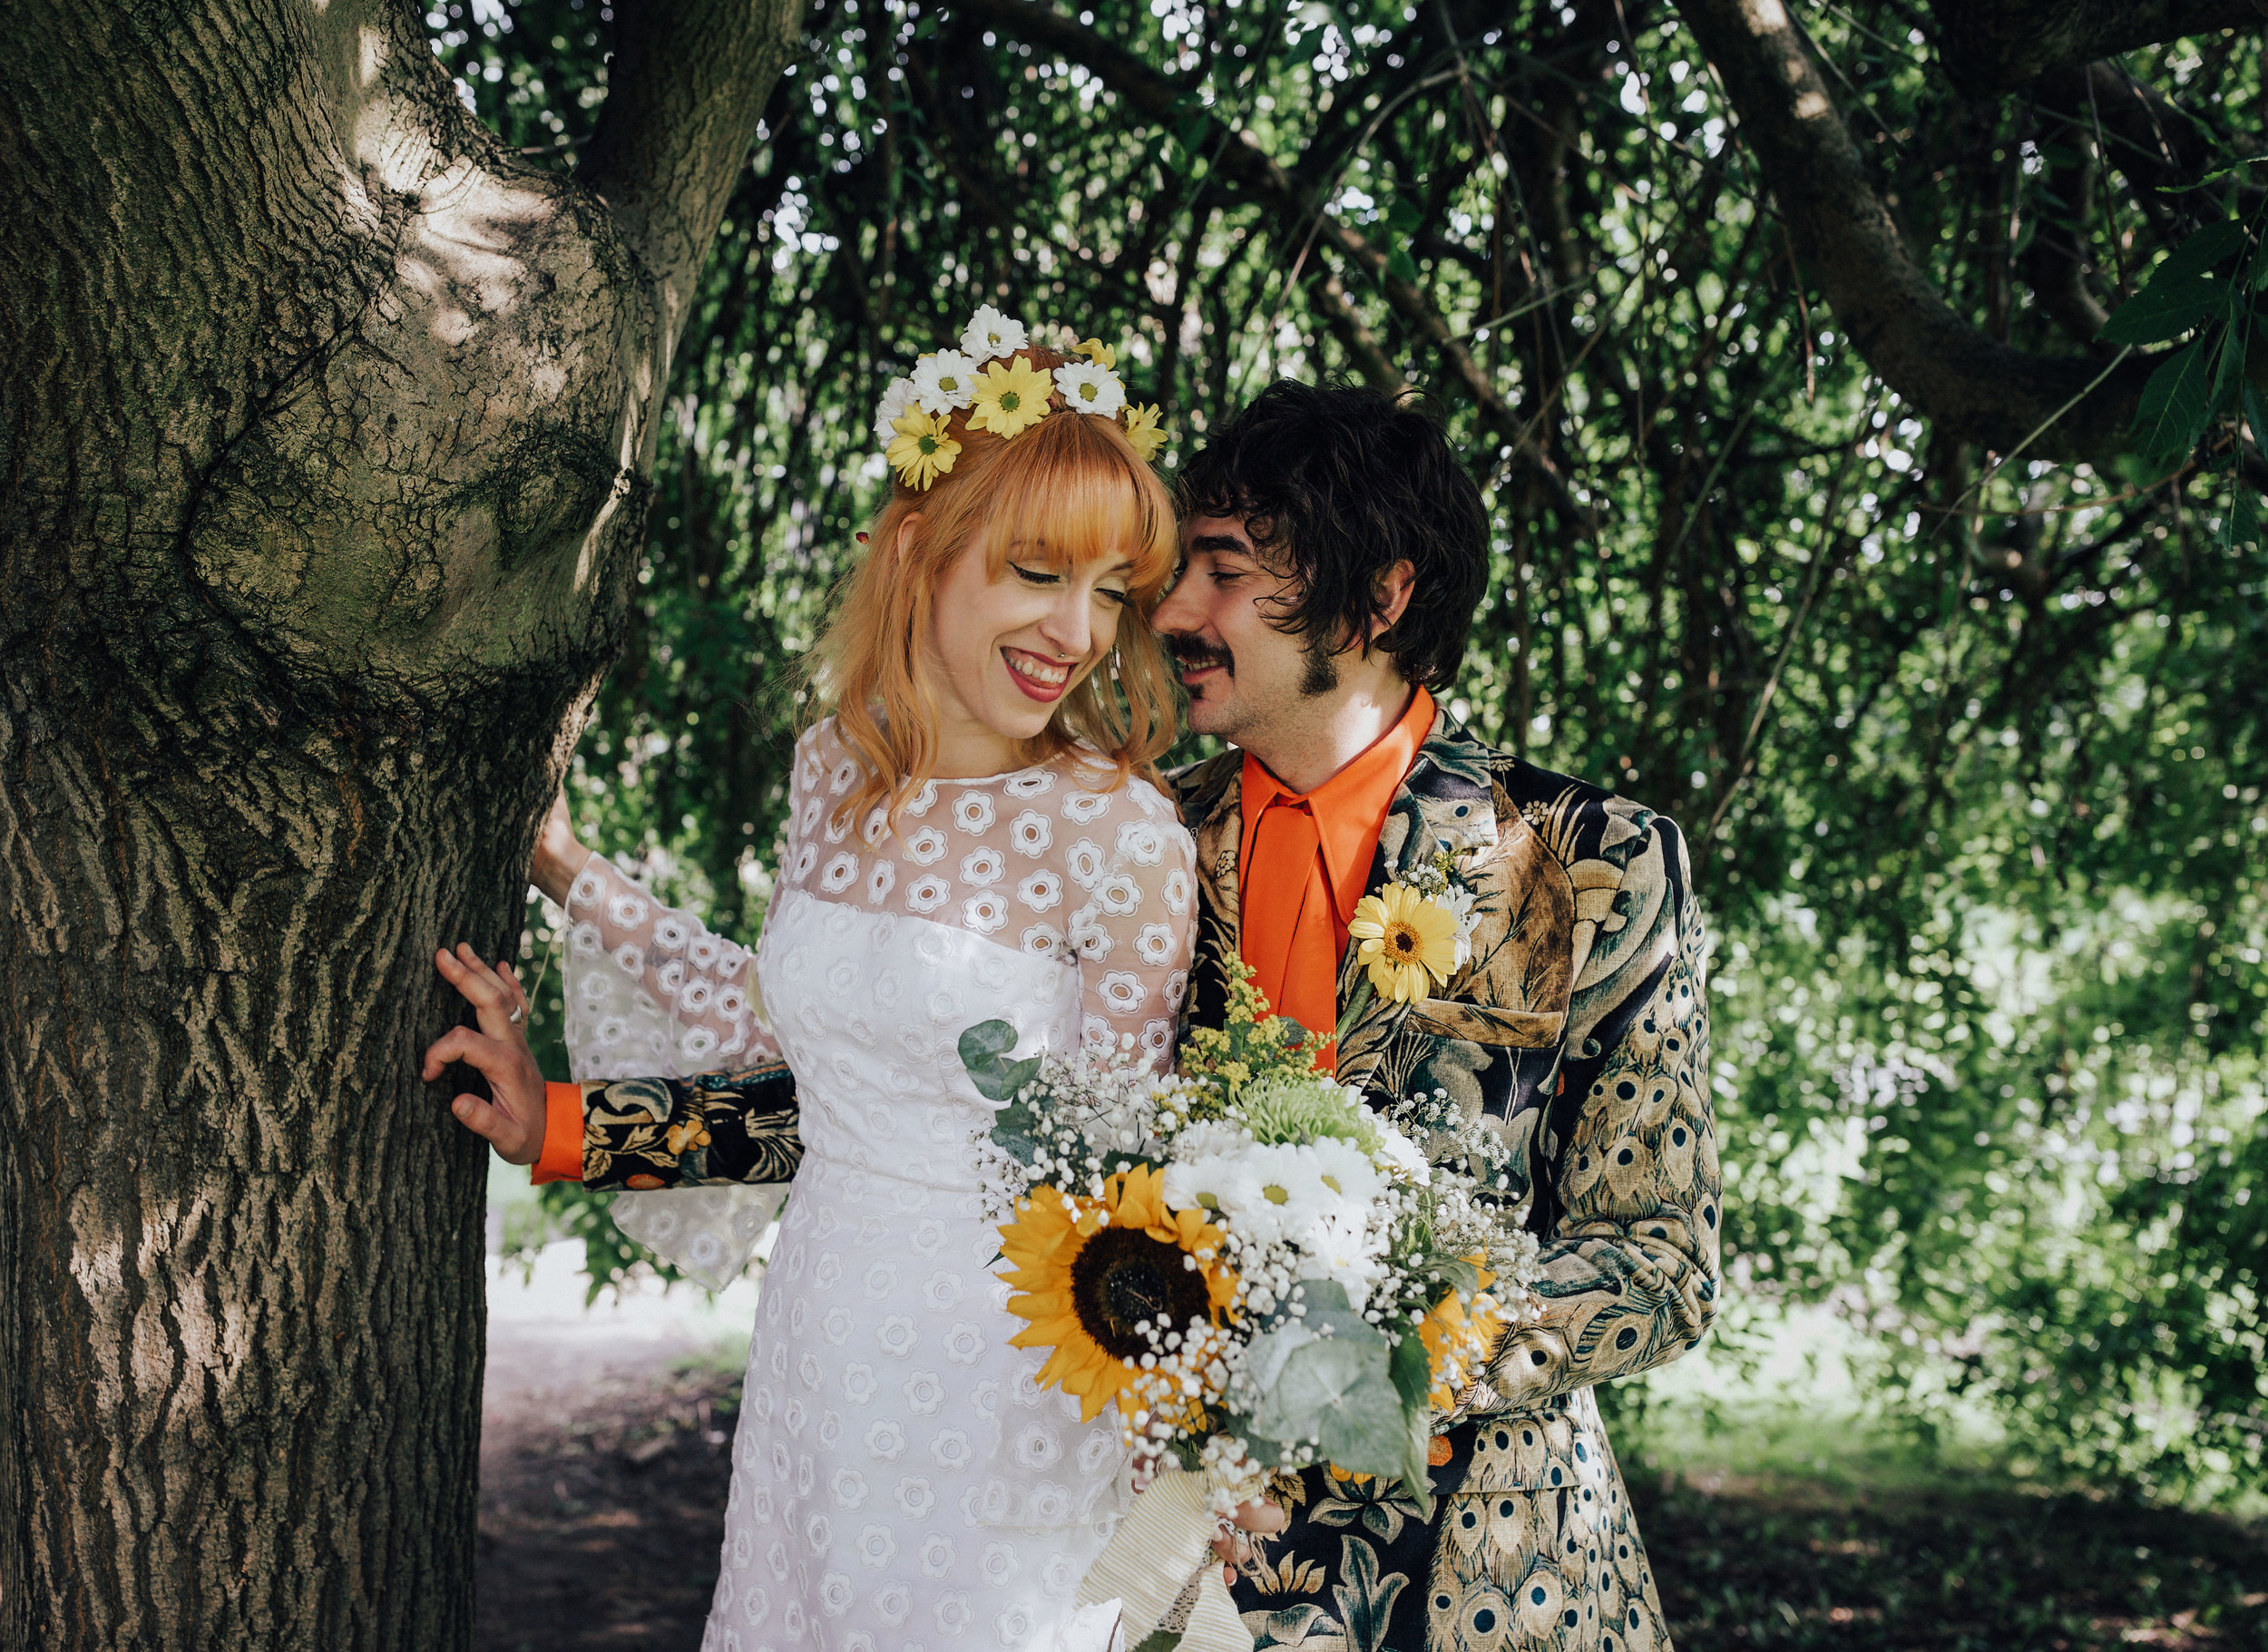 ALTERNATIVE_WEDDING_PHOTOGRAPHY_LEEDS_UK_PJ_PHILLIPS_PHOTOGRAPHY_109.jpg